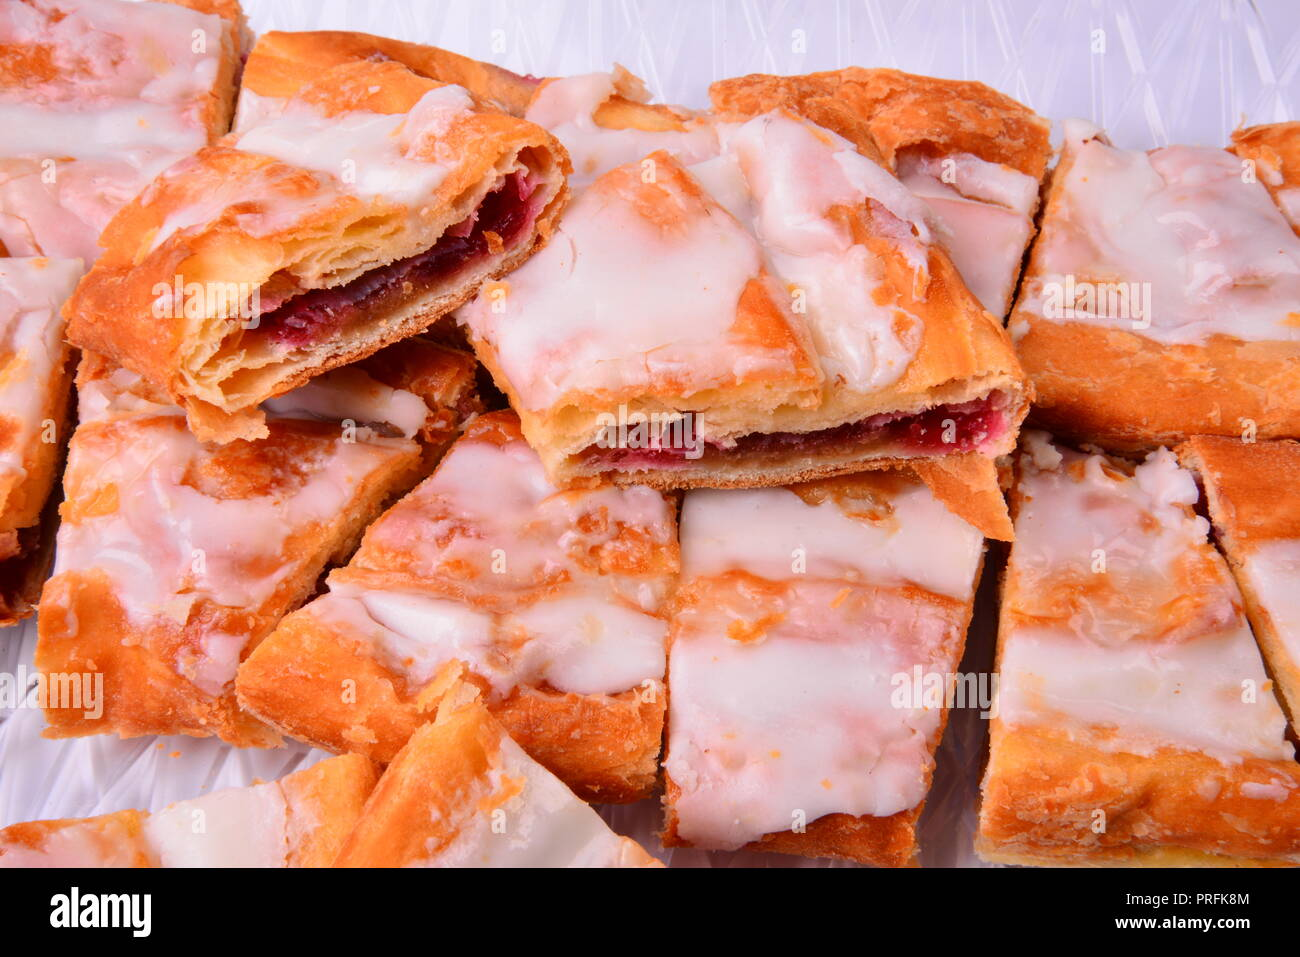 The sweet pastry treat raspberry Kringle  from Racine Wisconsin is a local favorite. - Stock Image